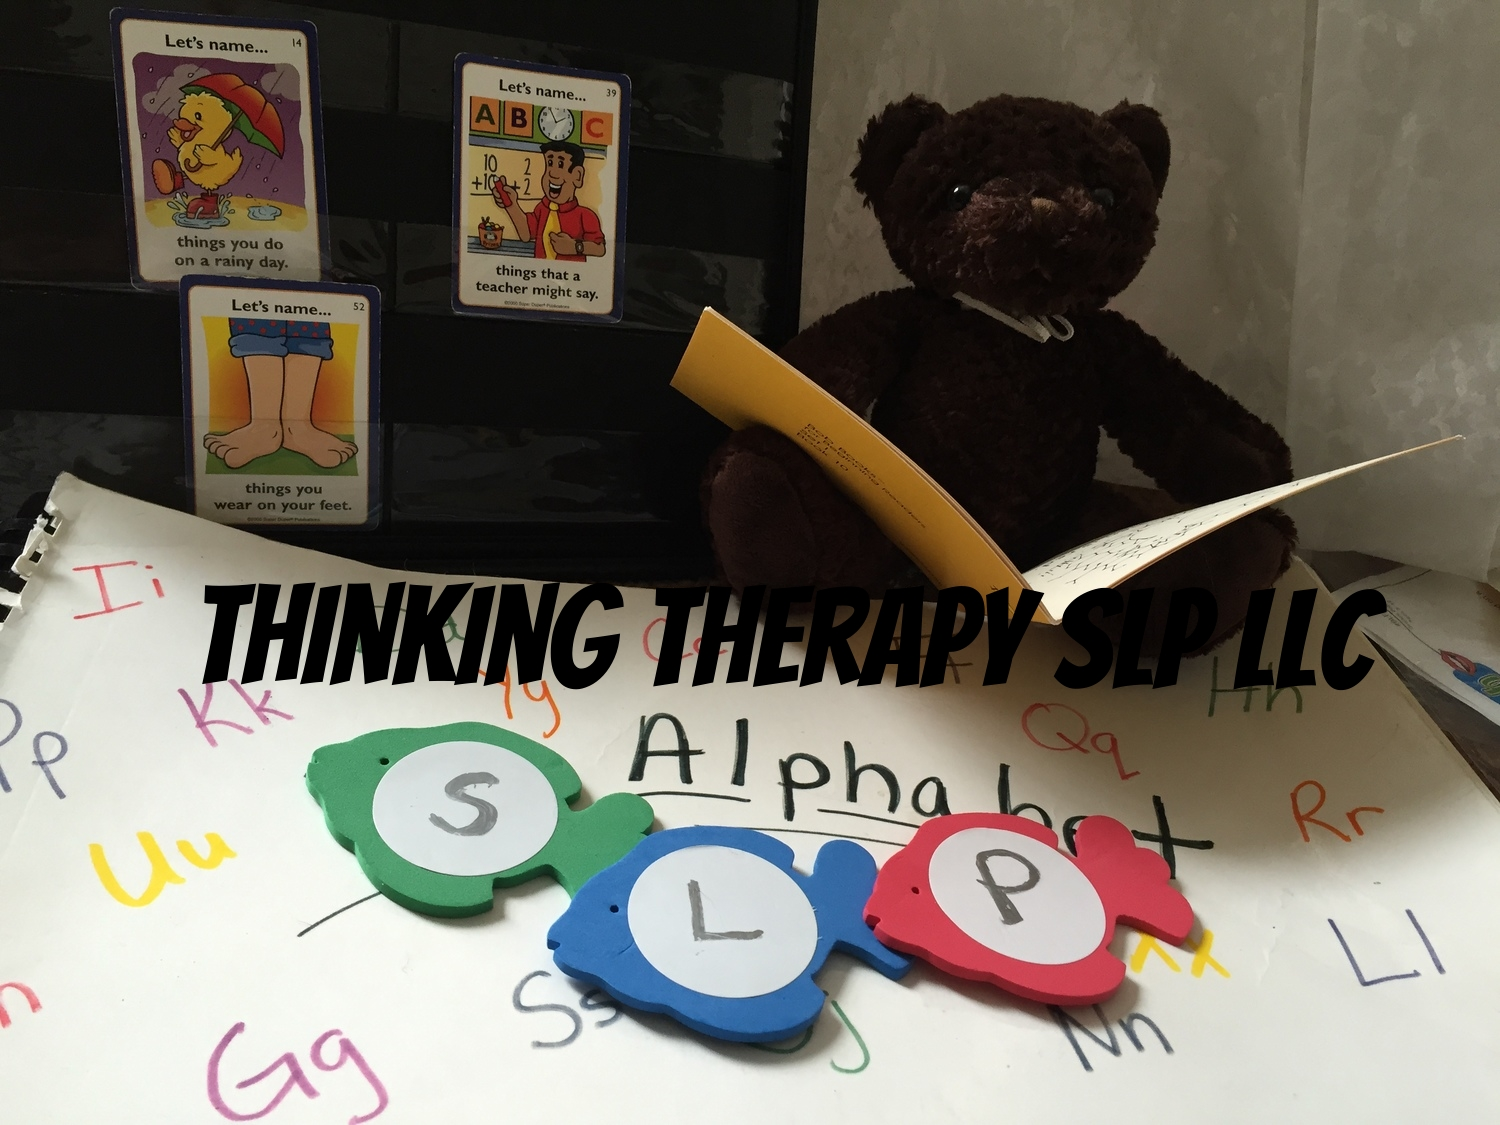 Thinking Therapy SLP LLC